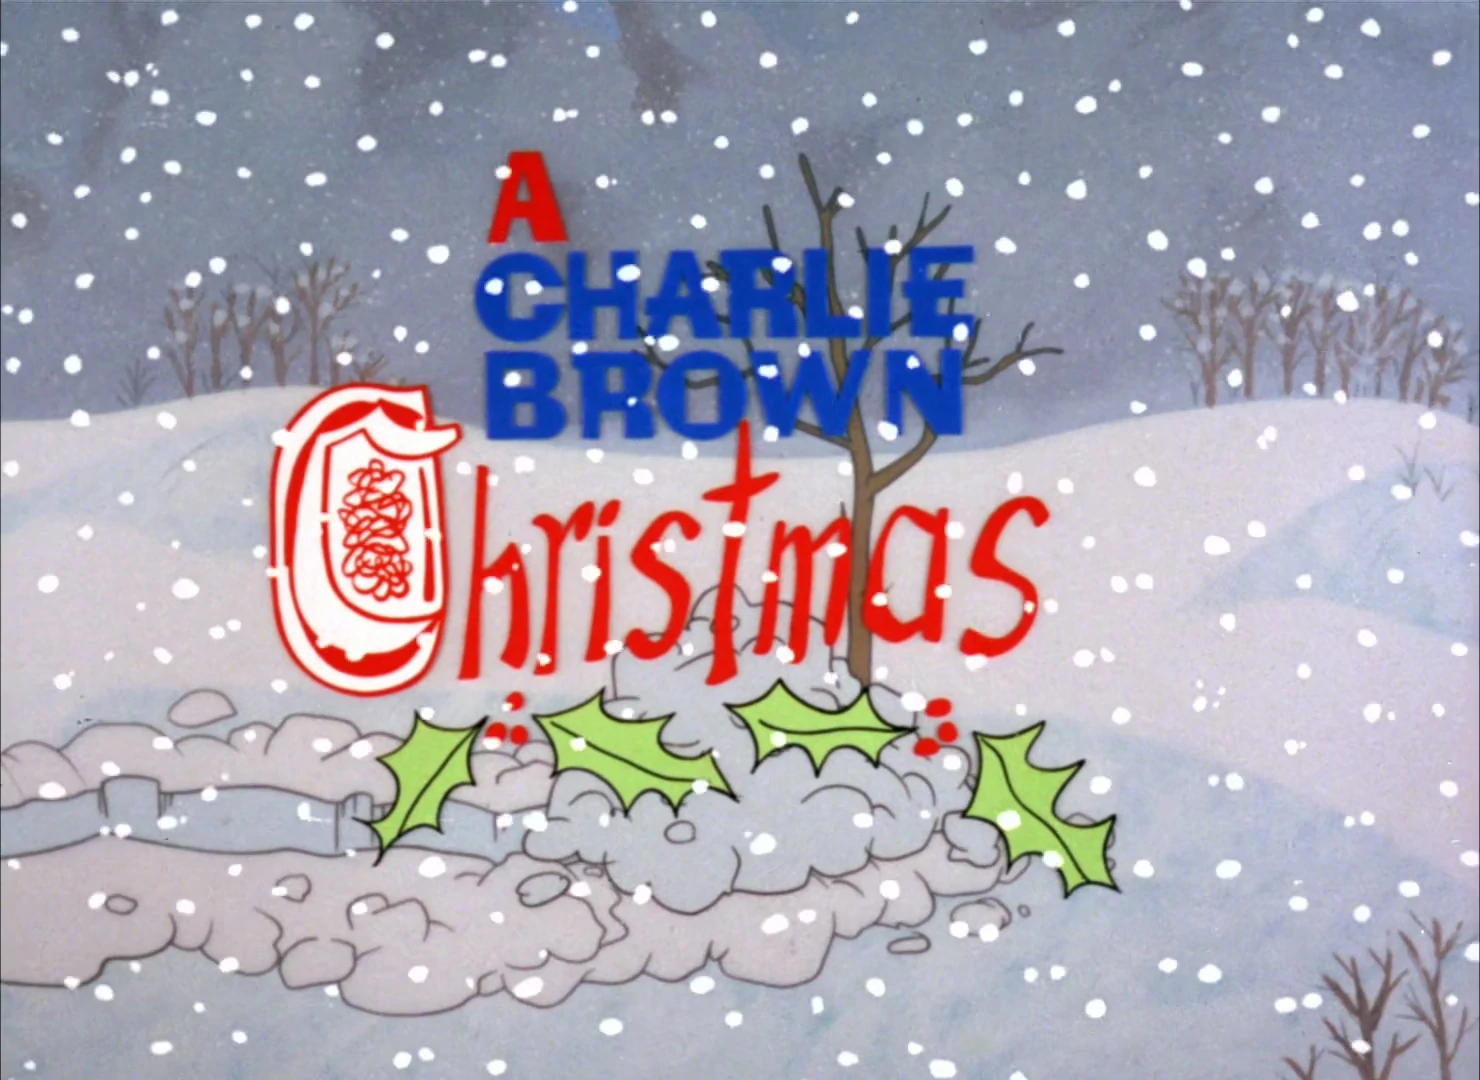 A Charlie Brown Christmas credits